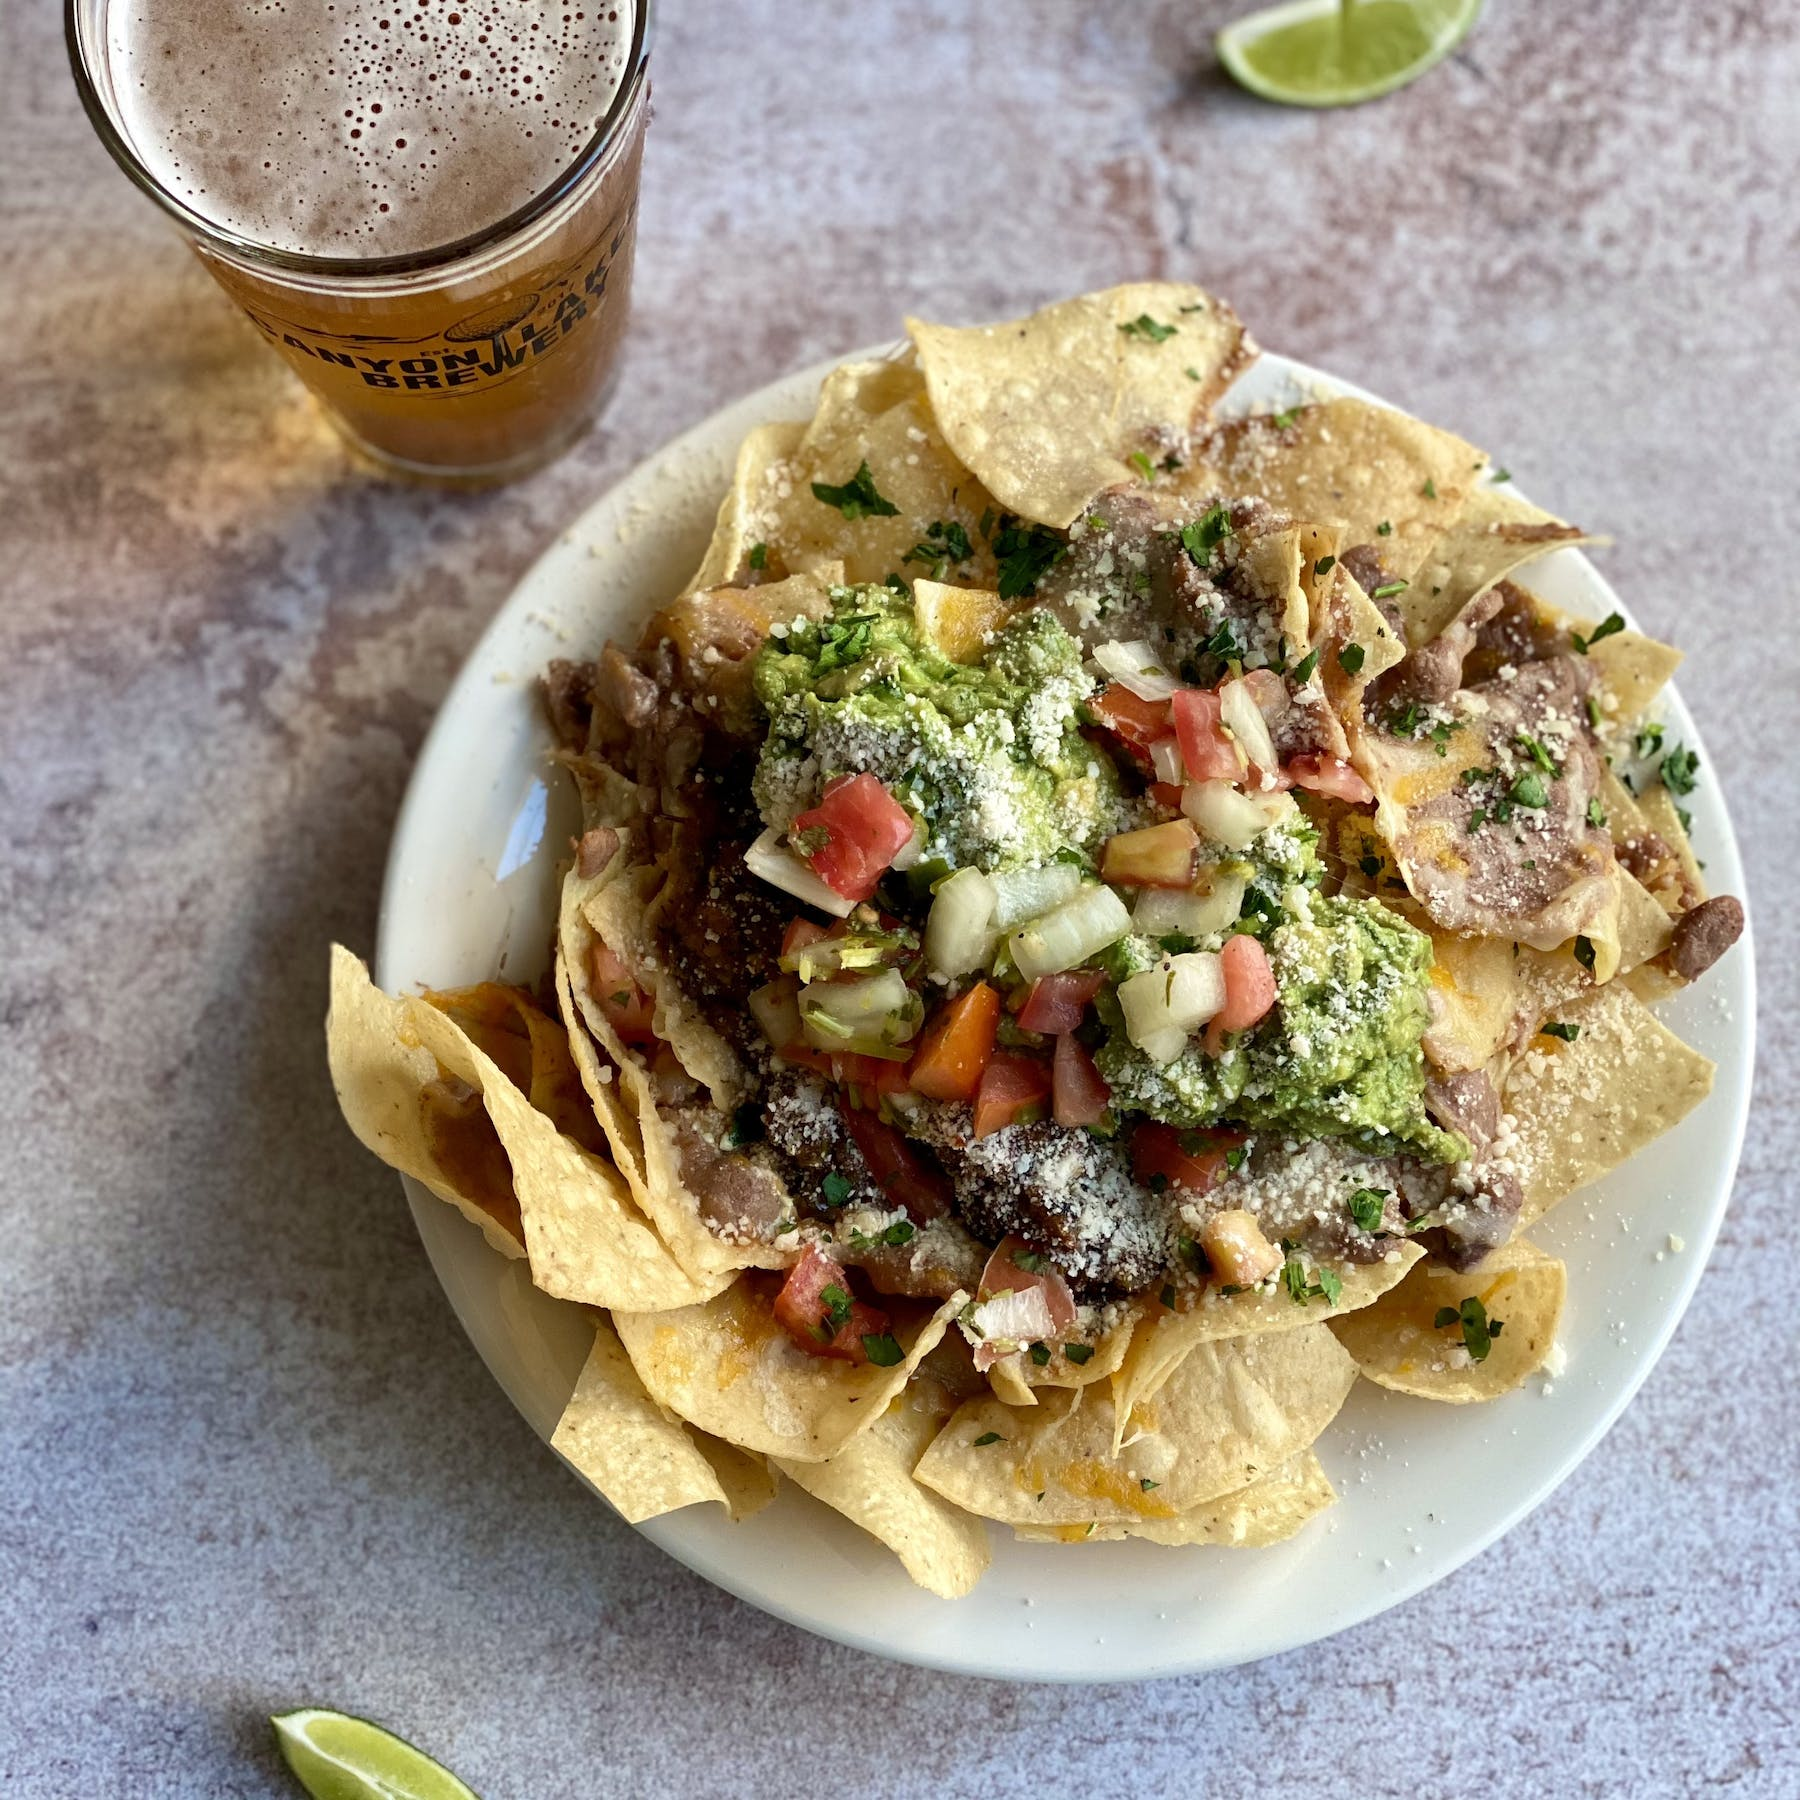 a plate of nachos with a pint of beer